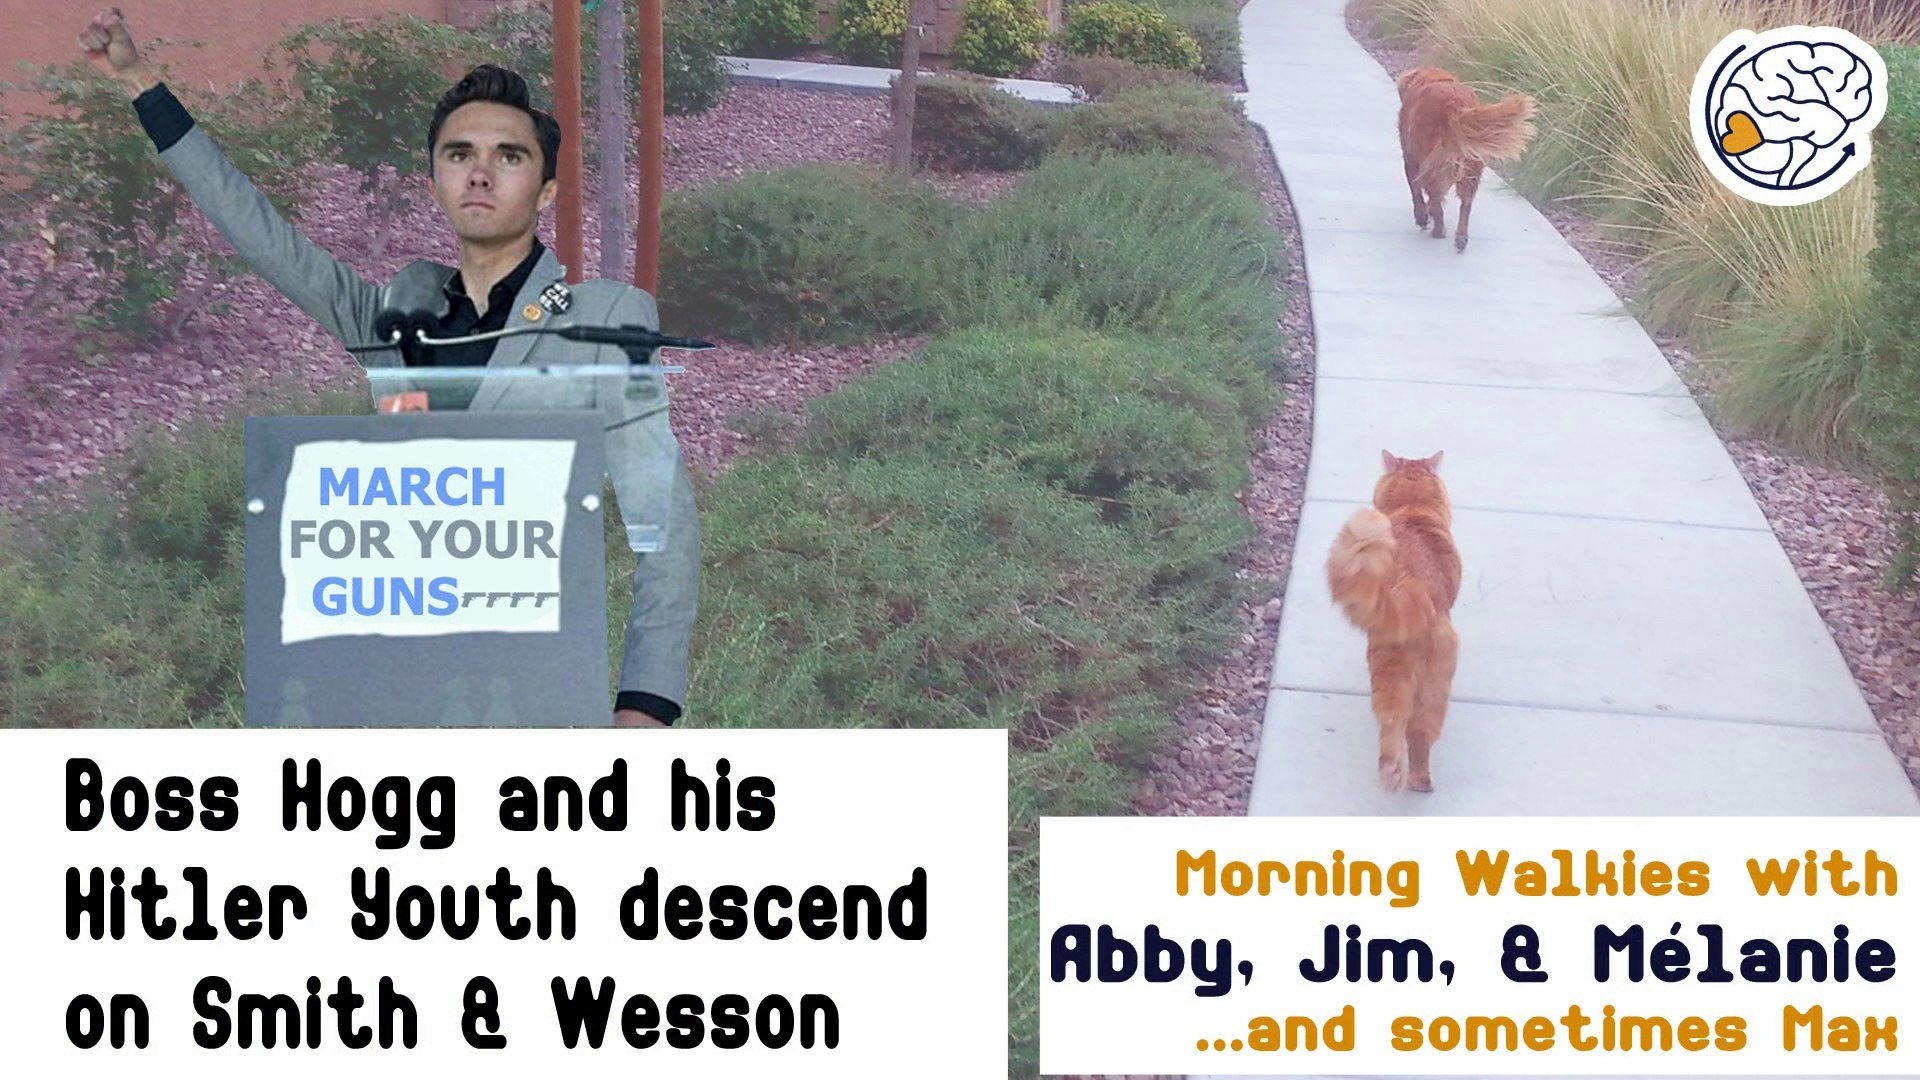 Boss Hogg and his Hitler Youth descend on Smith & Wesson -Walkies with Abby